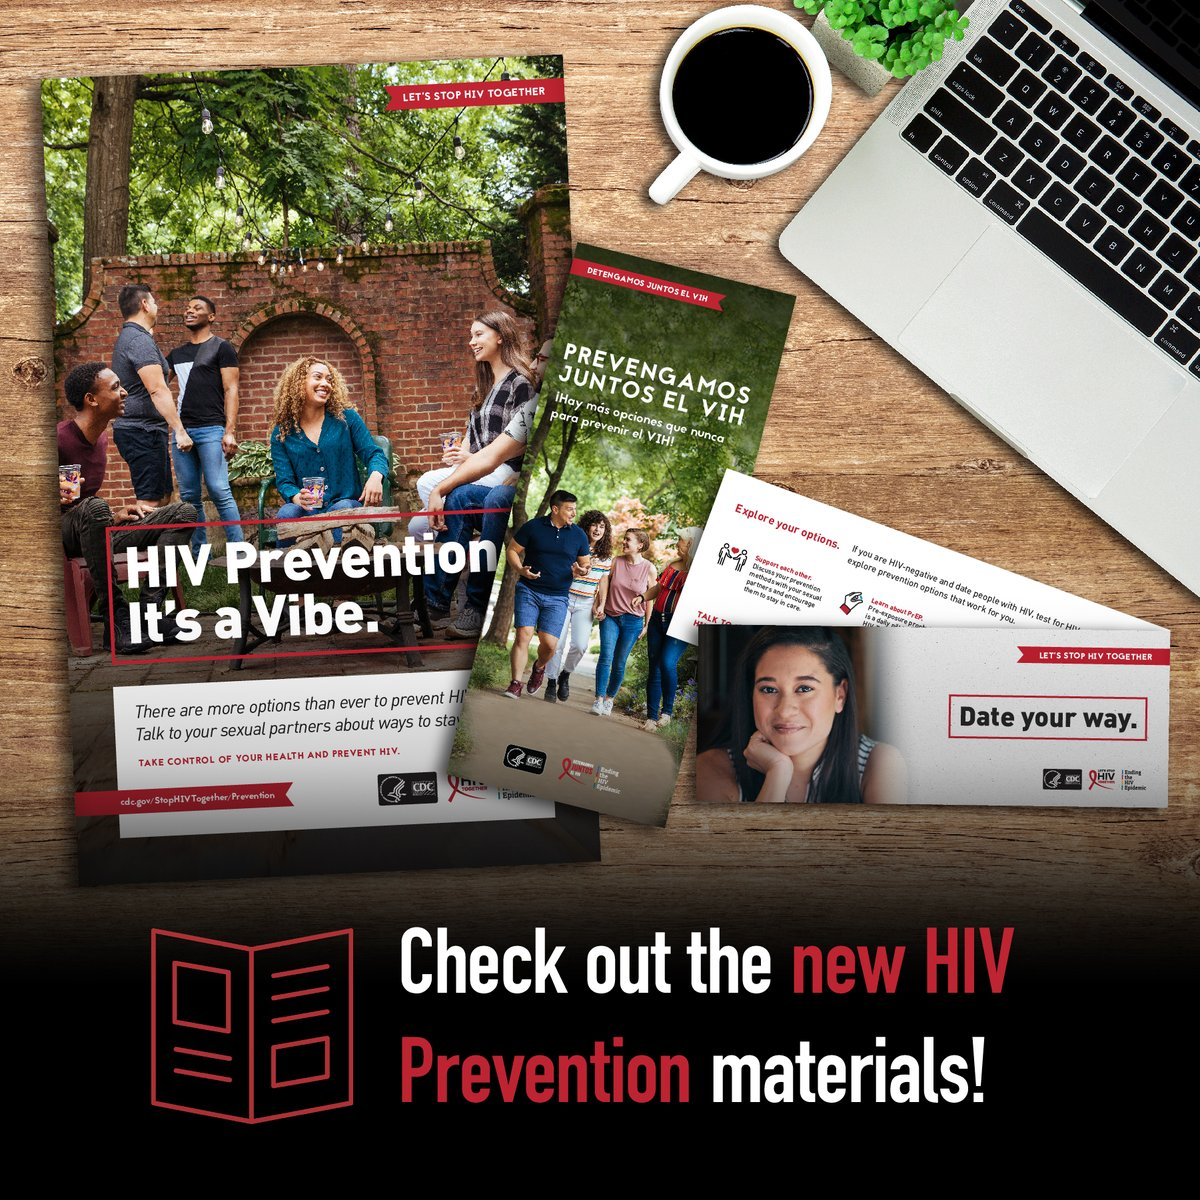 Visit our website to check out our new #HIVPrevention materials to help #StopHIVTogether!  Let us know what you think below ⬇️: